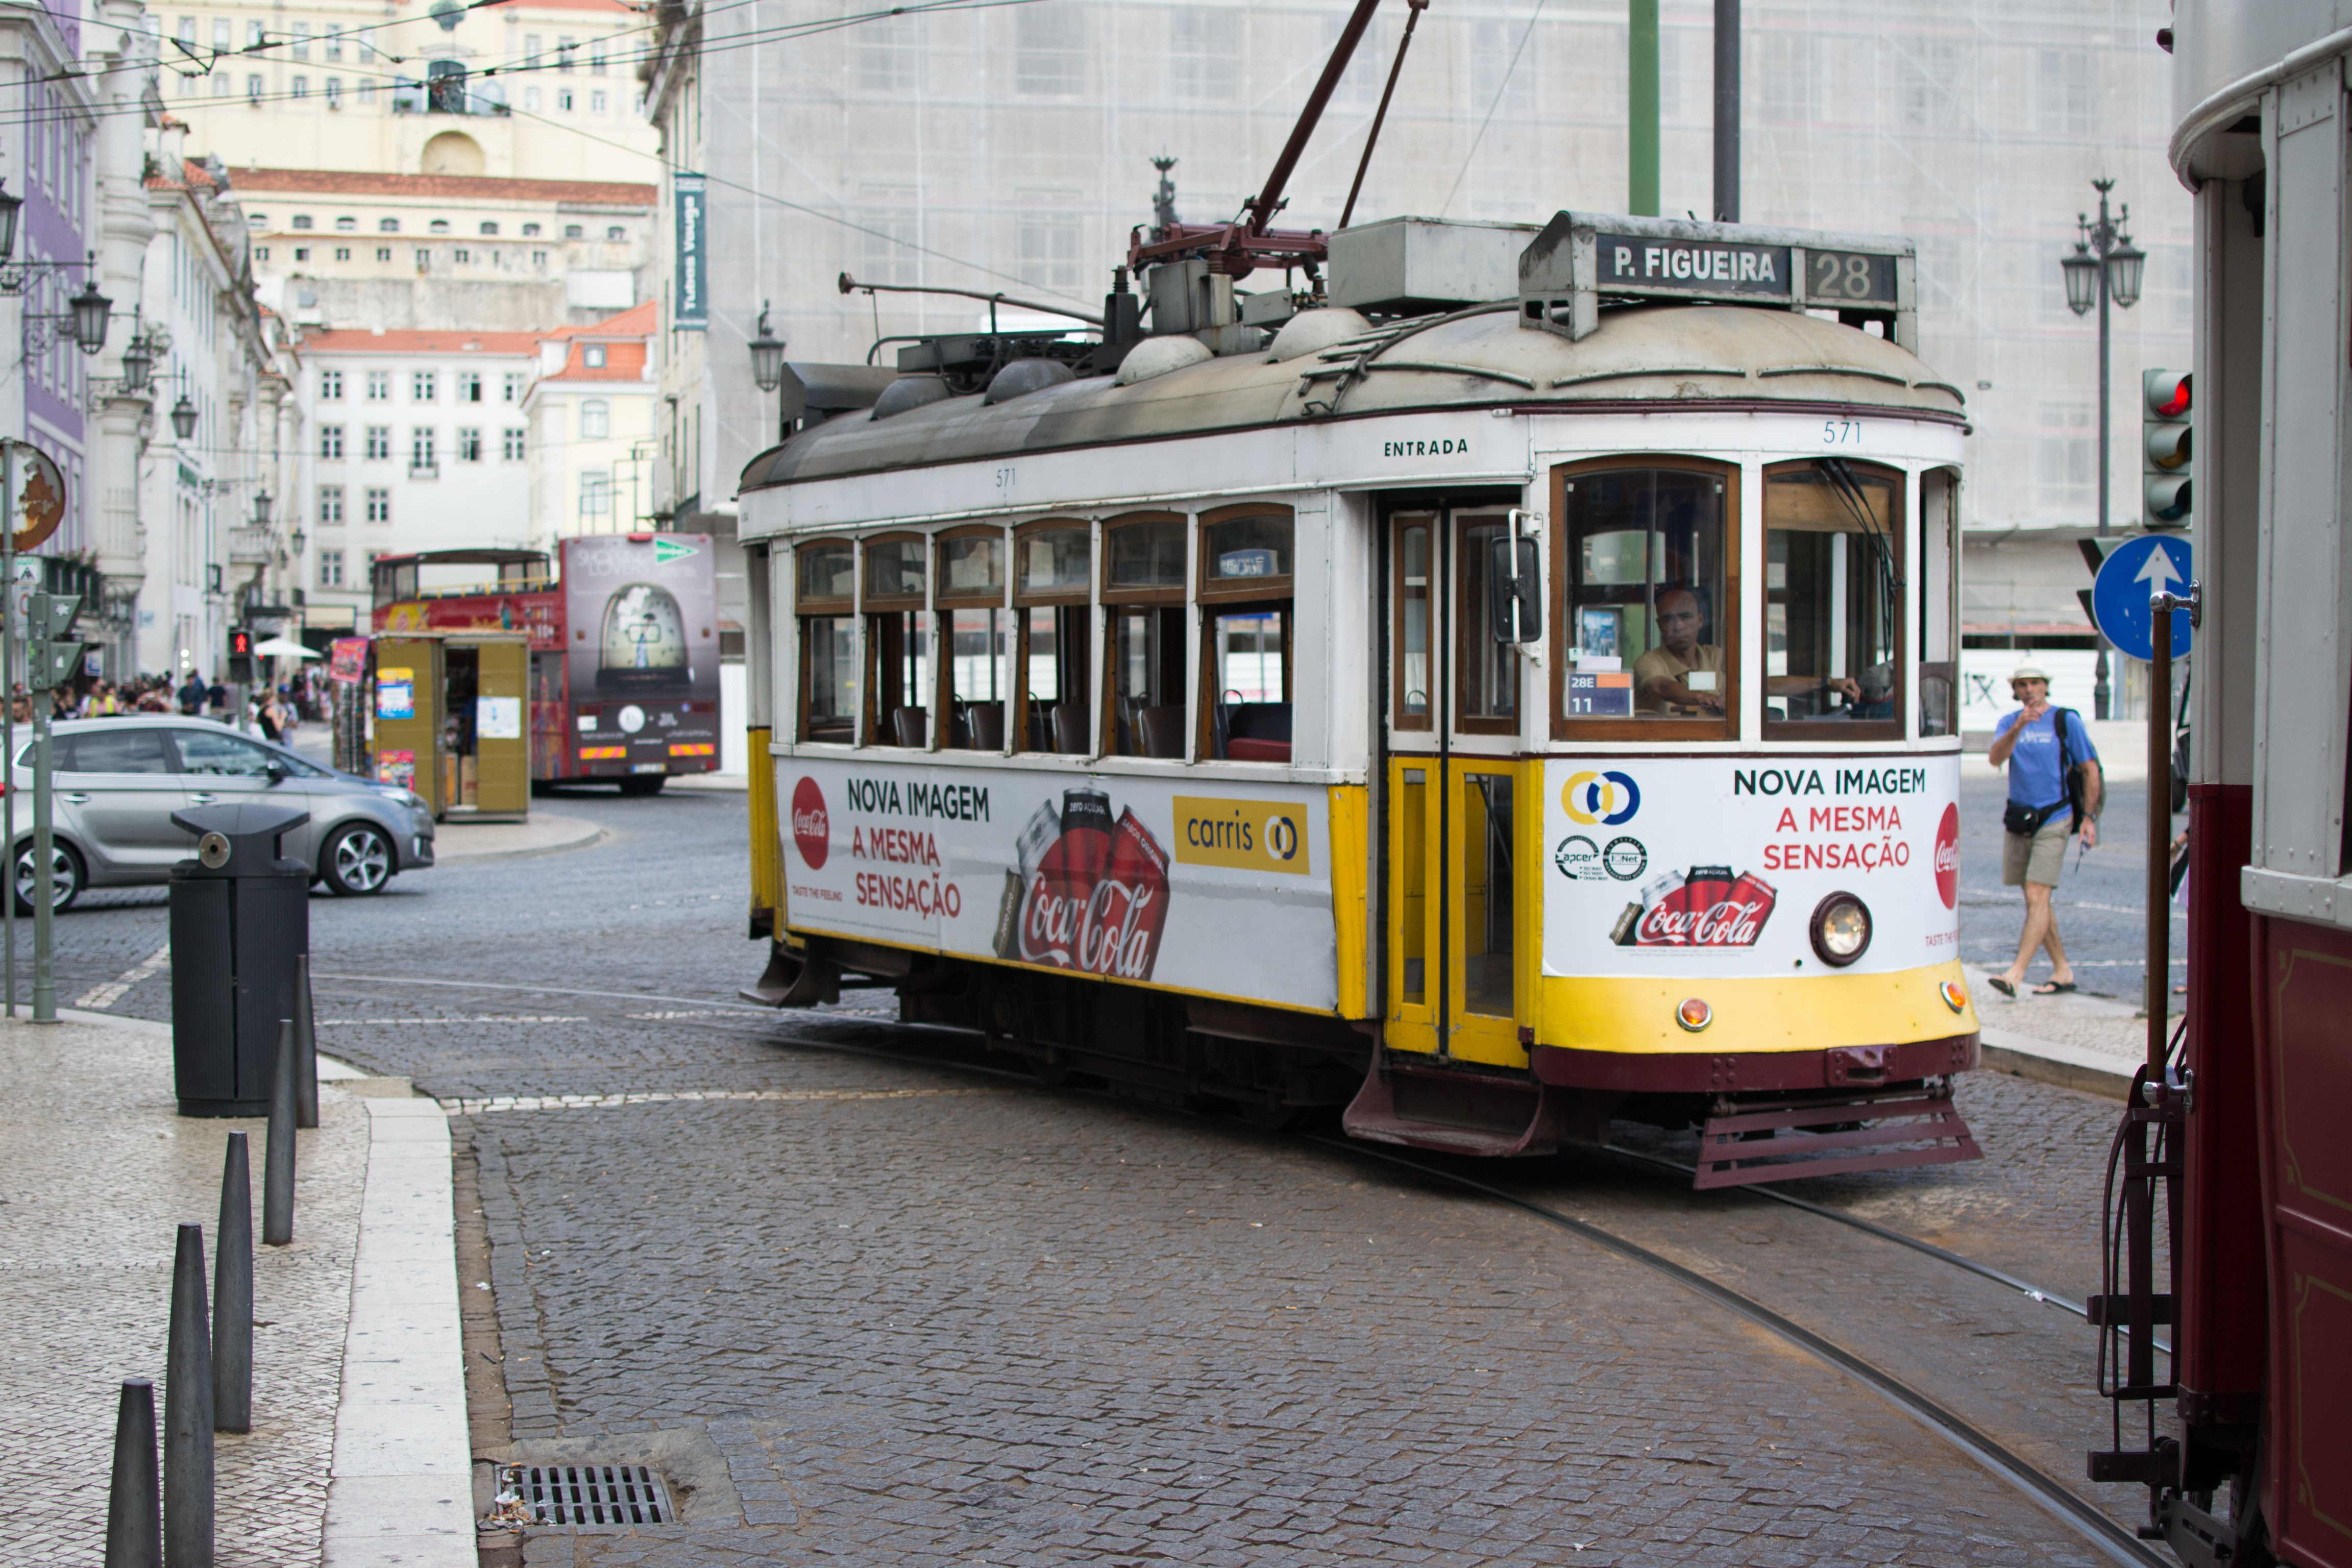 Vintage tram with ads turning in a Lisbon street